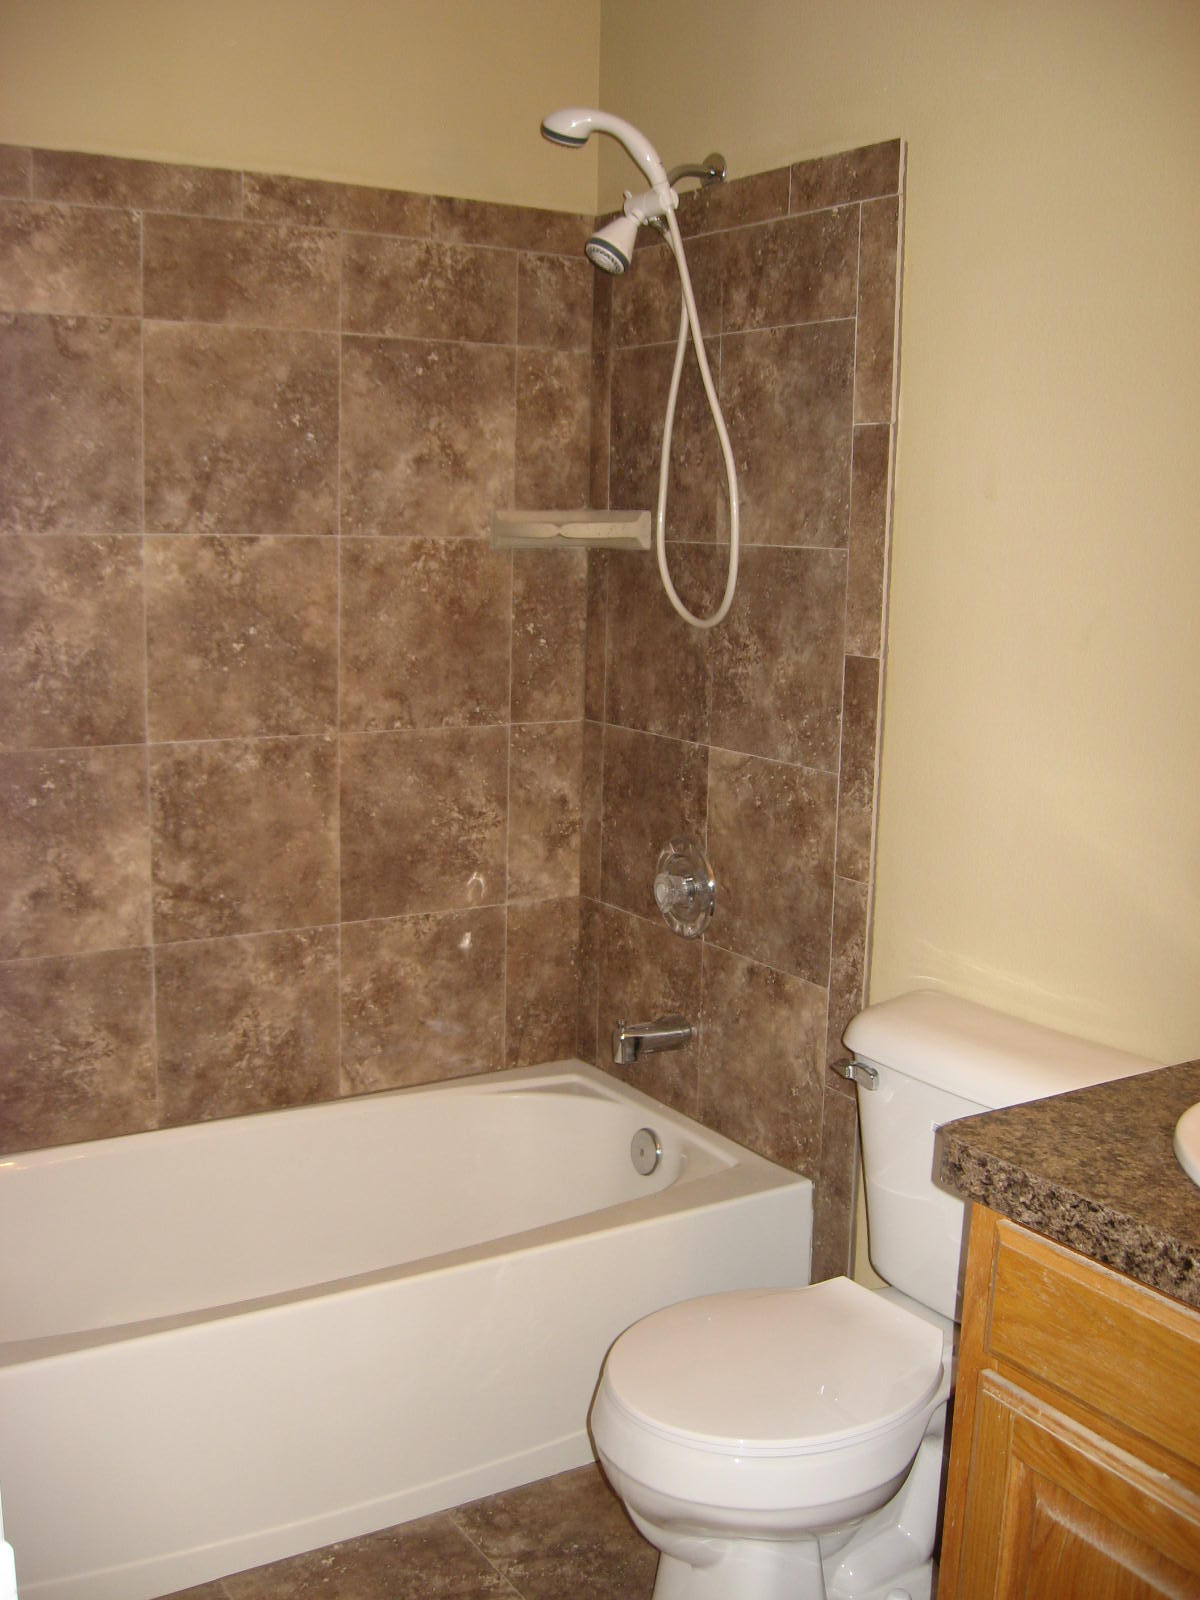 Coordinating Bathroom Floor And Wall Tile : Matching wall and floor tiles bathroom